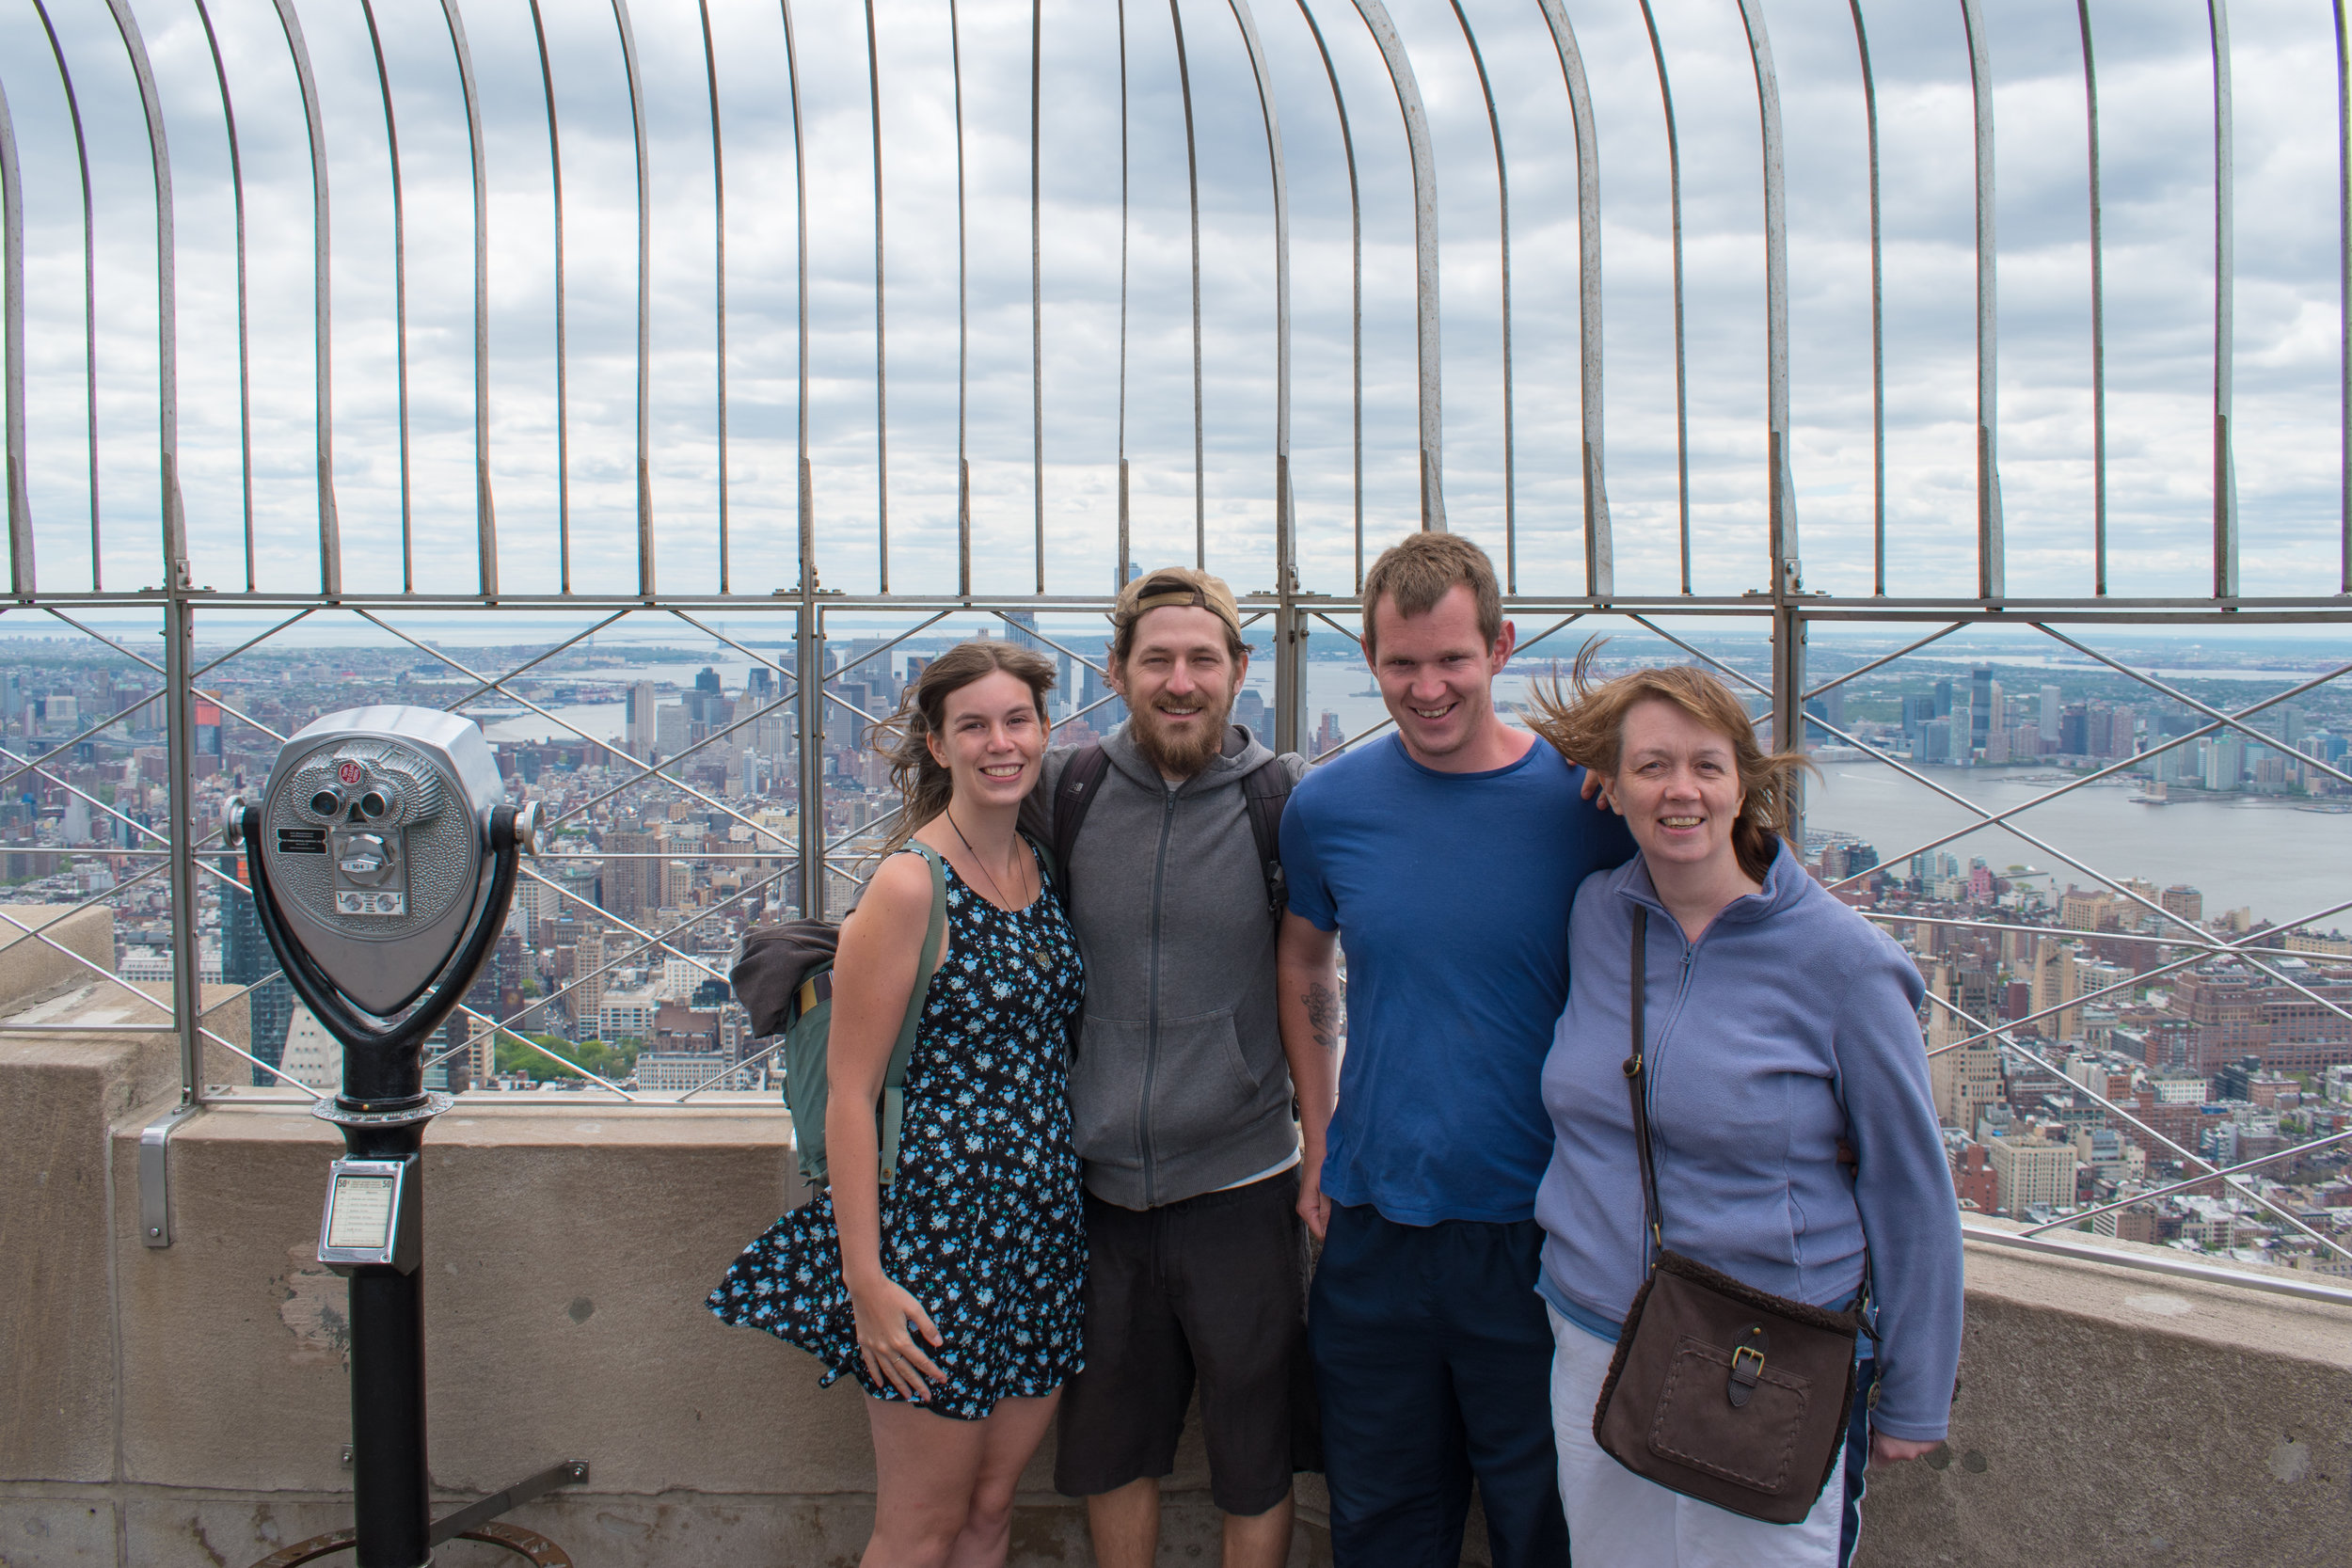 Family Portrait at The Empire State Building Observation Deck in New York